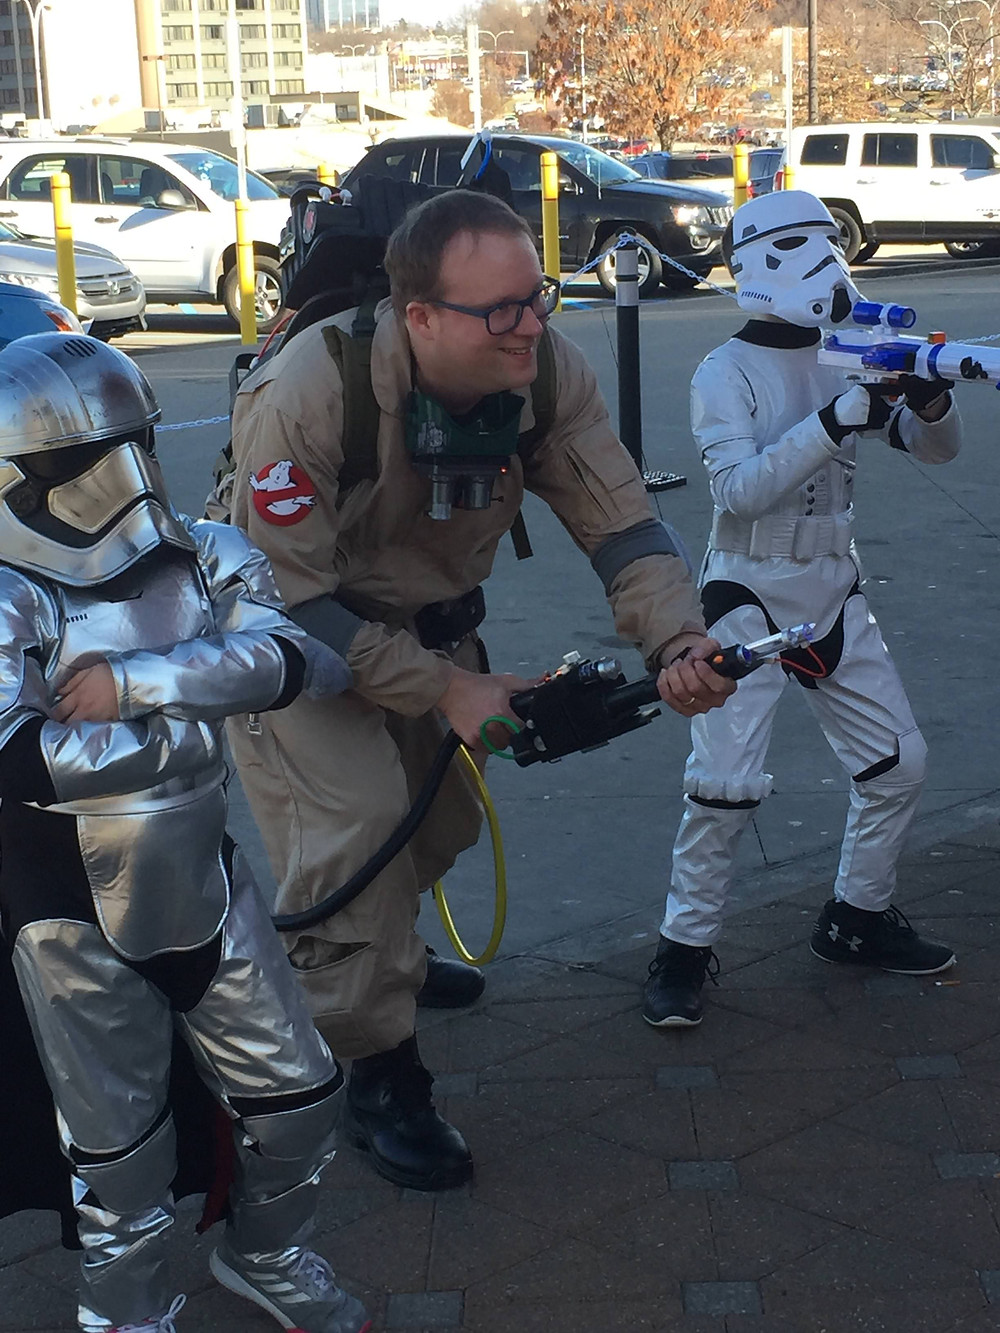 Ghostbuster cosplay with Star Wars stormtroopers at Steel City Comic Con.